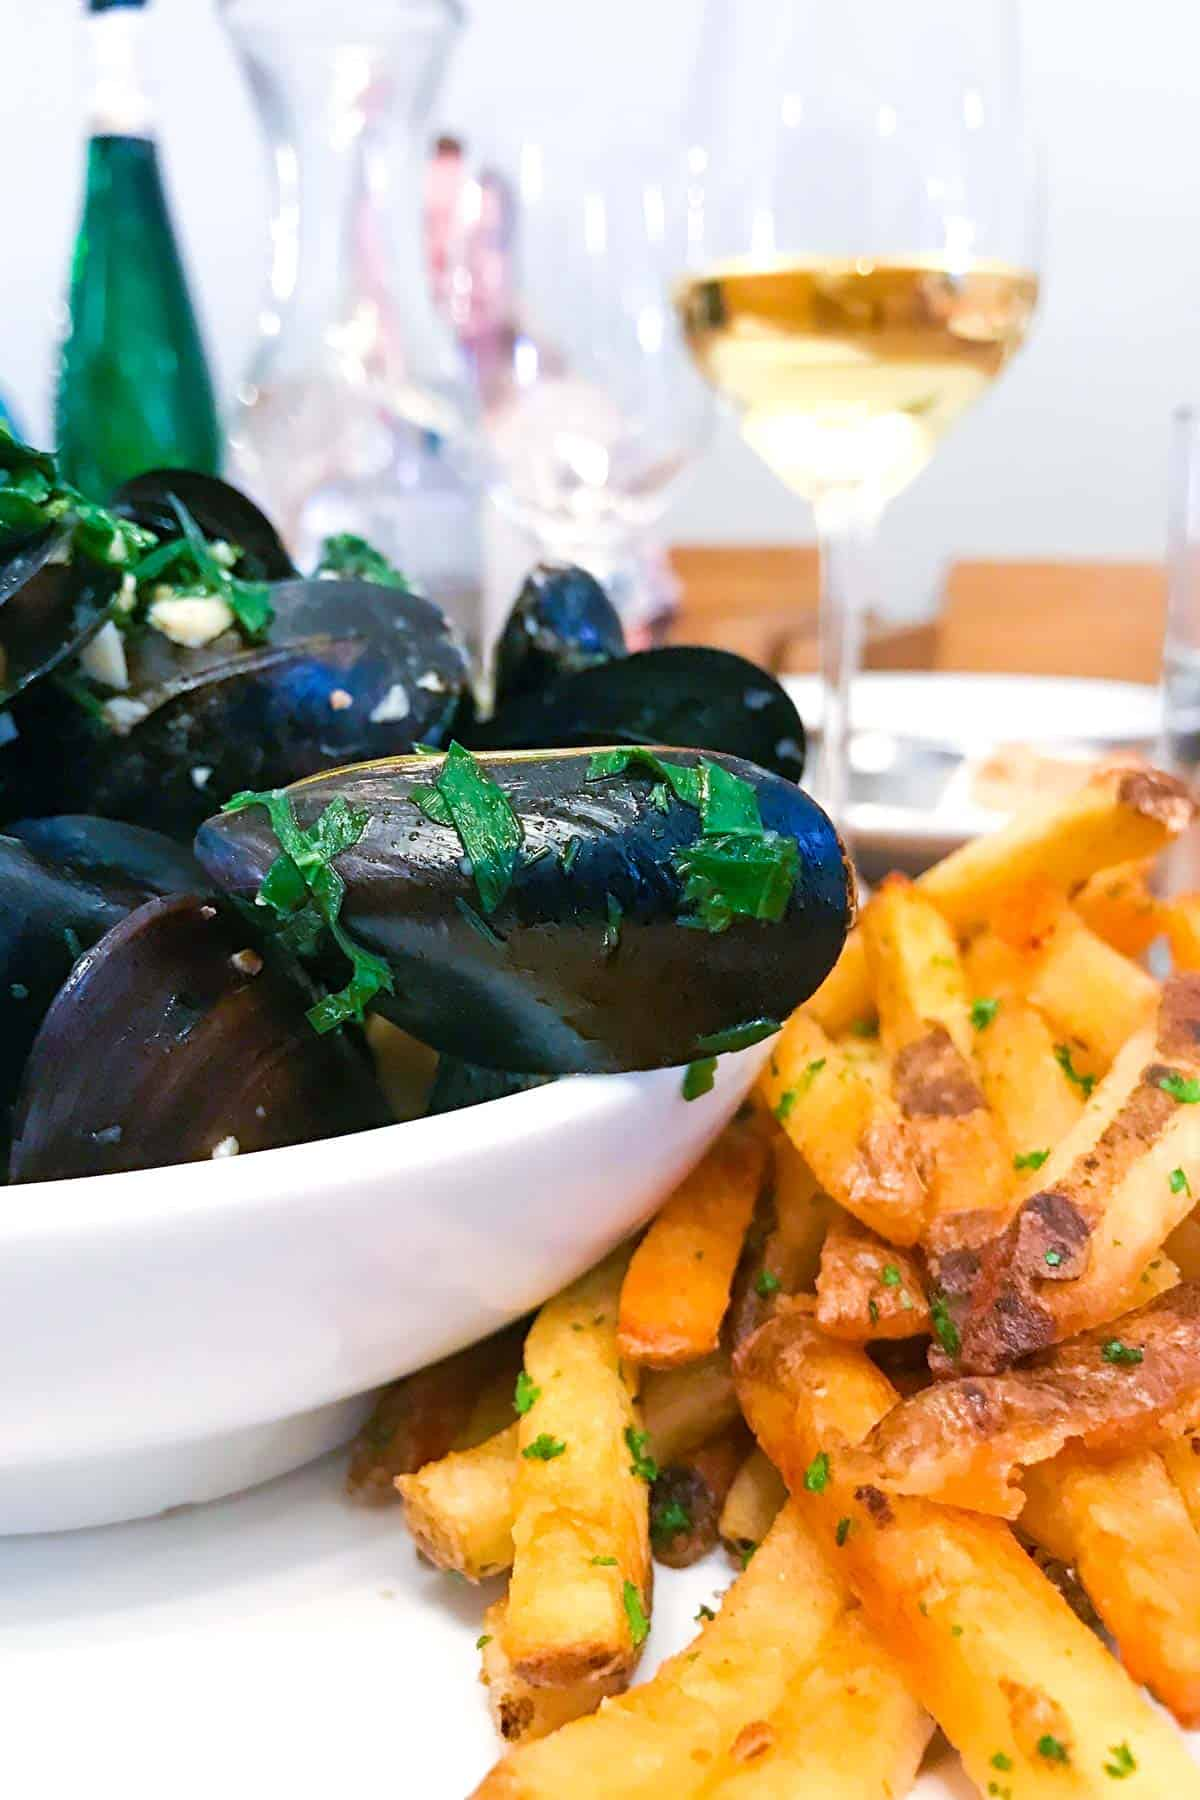 Moules Frites from Brasserie Four in Walla Walla